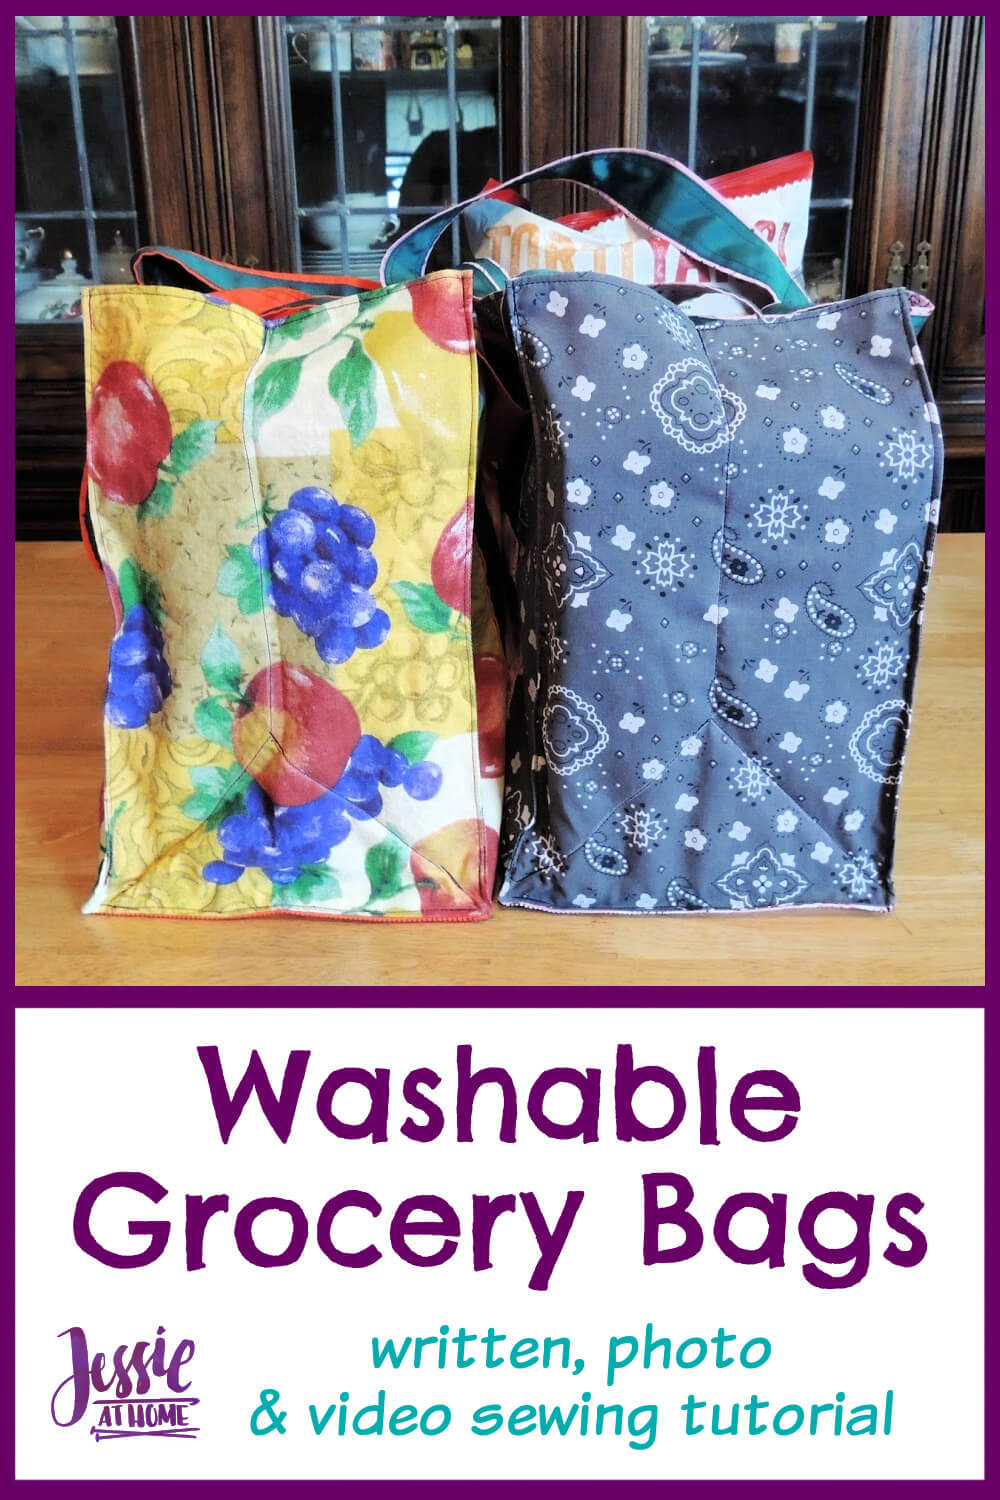 Washable Grocery Bags Sewing Tutorial - Shop with Style